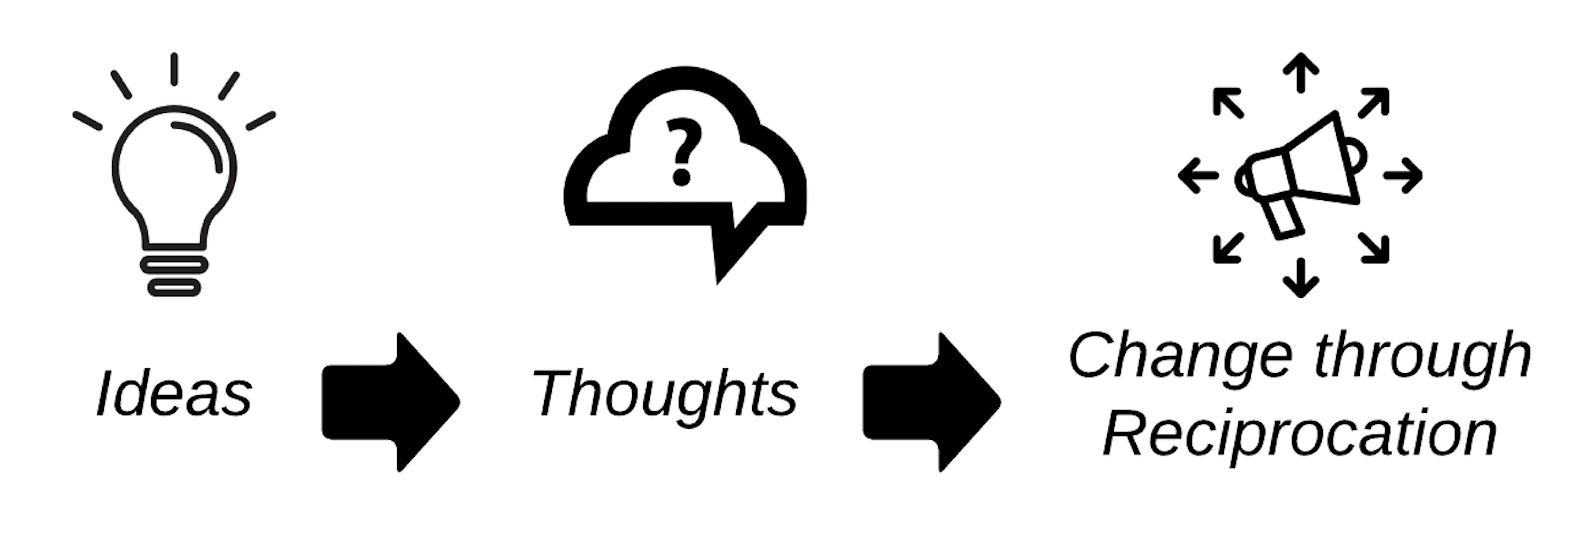 Simple flowchart for understanding systems